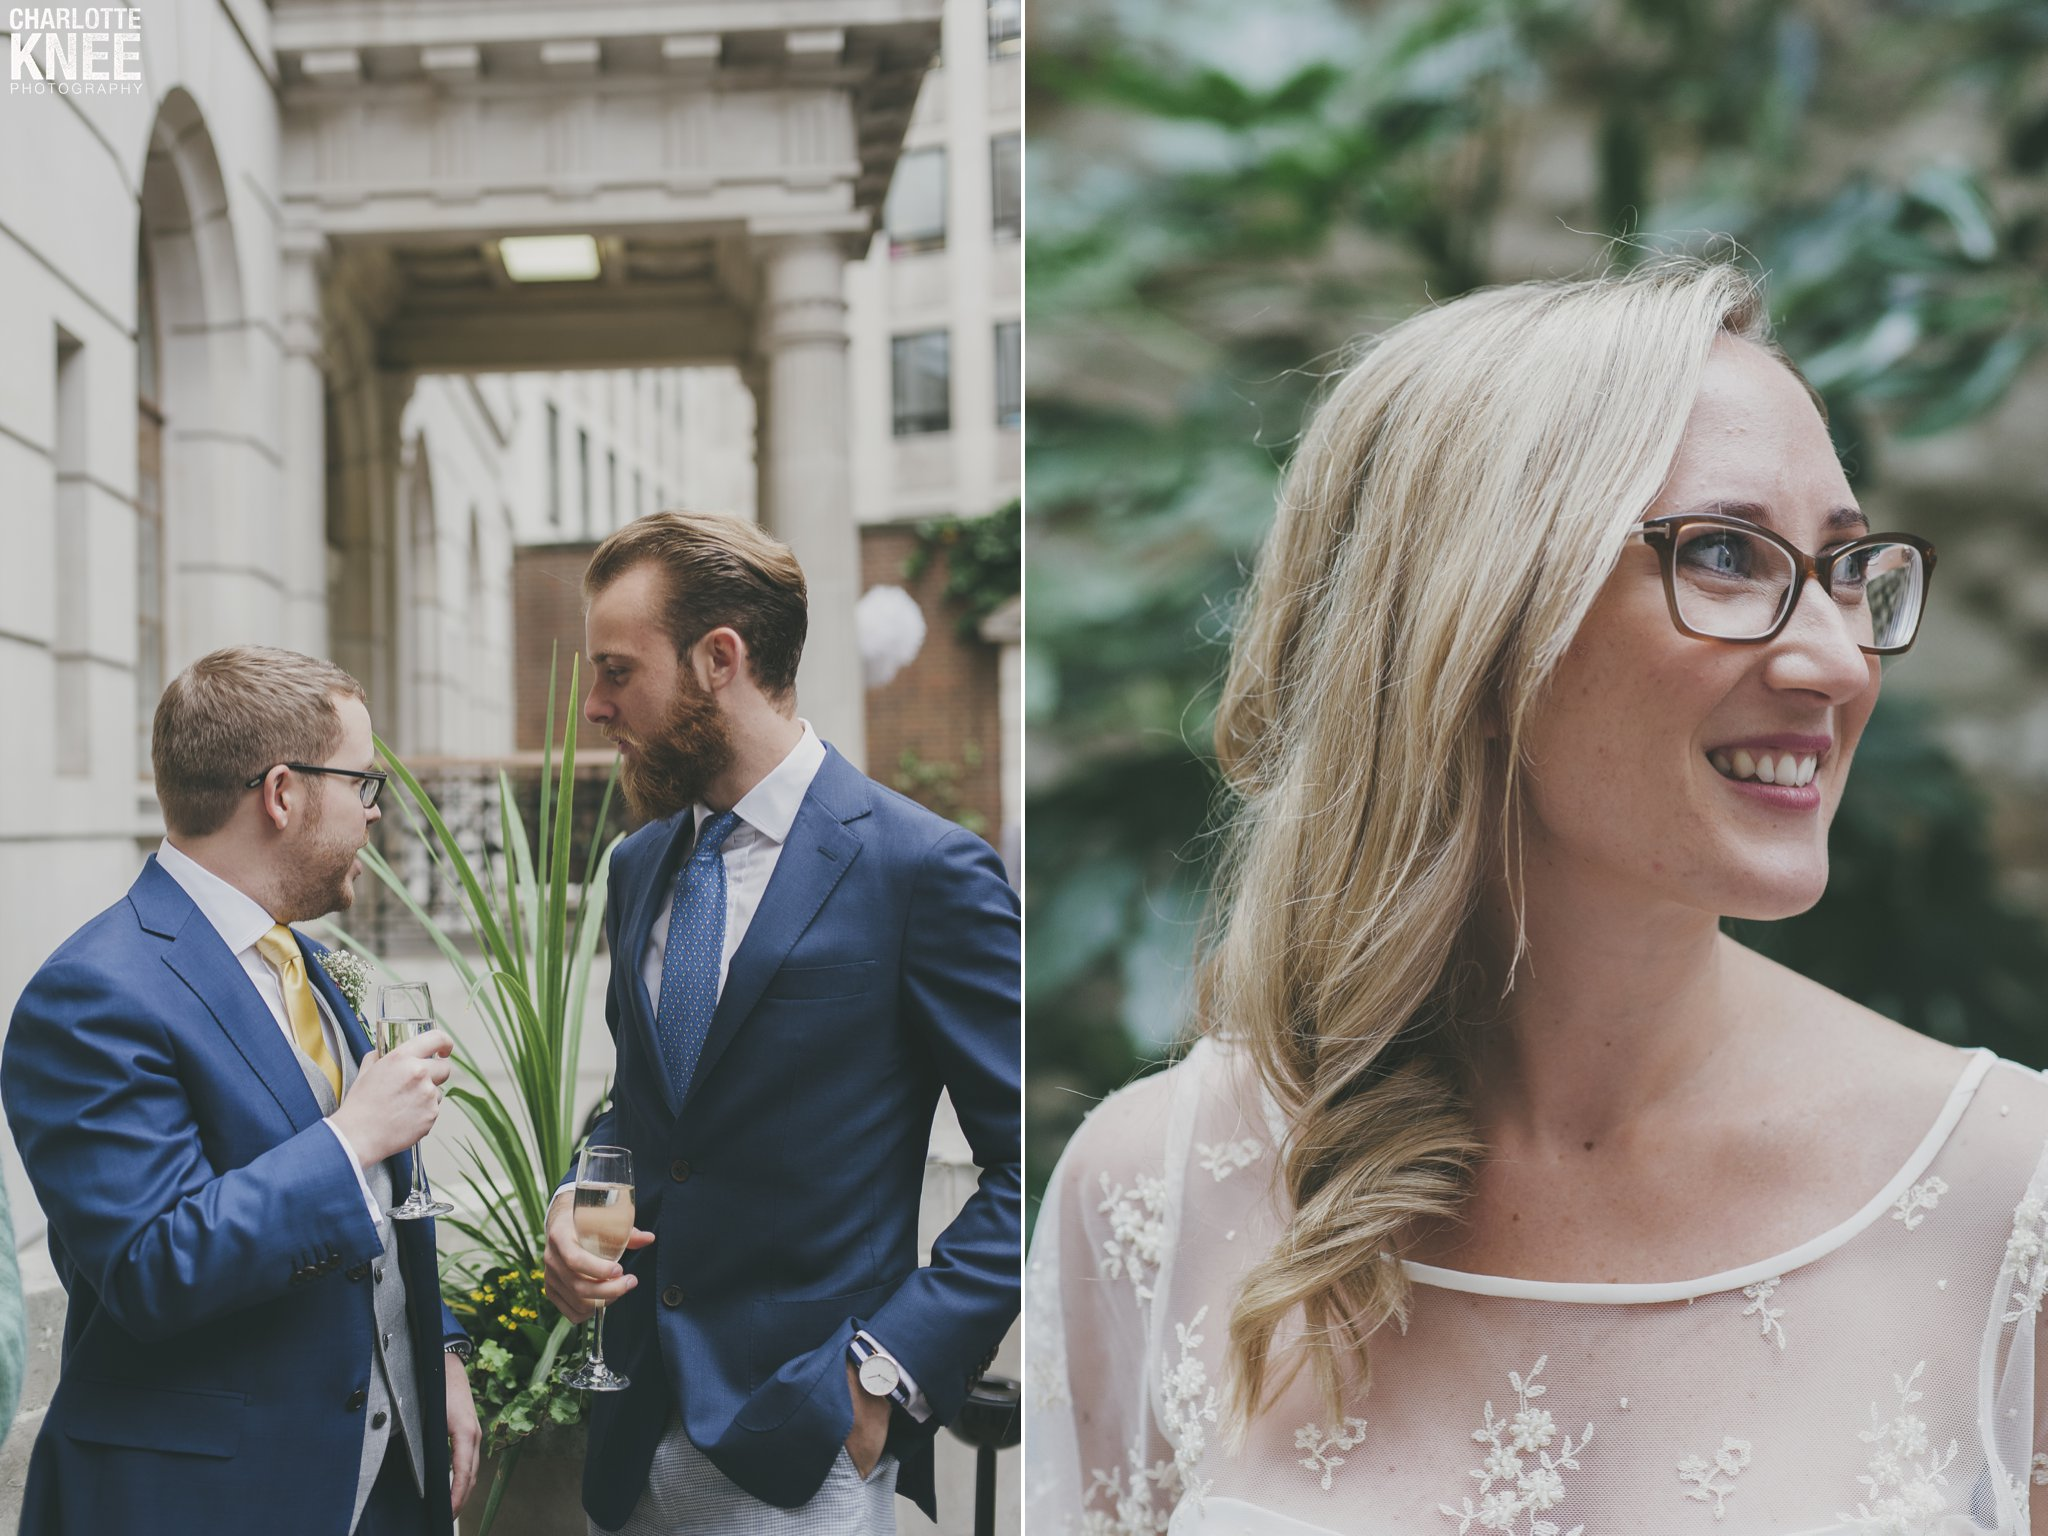 Saddlers Hall London Wedding Photography Copyright Charlotte Knee Photography_0145.jpg